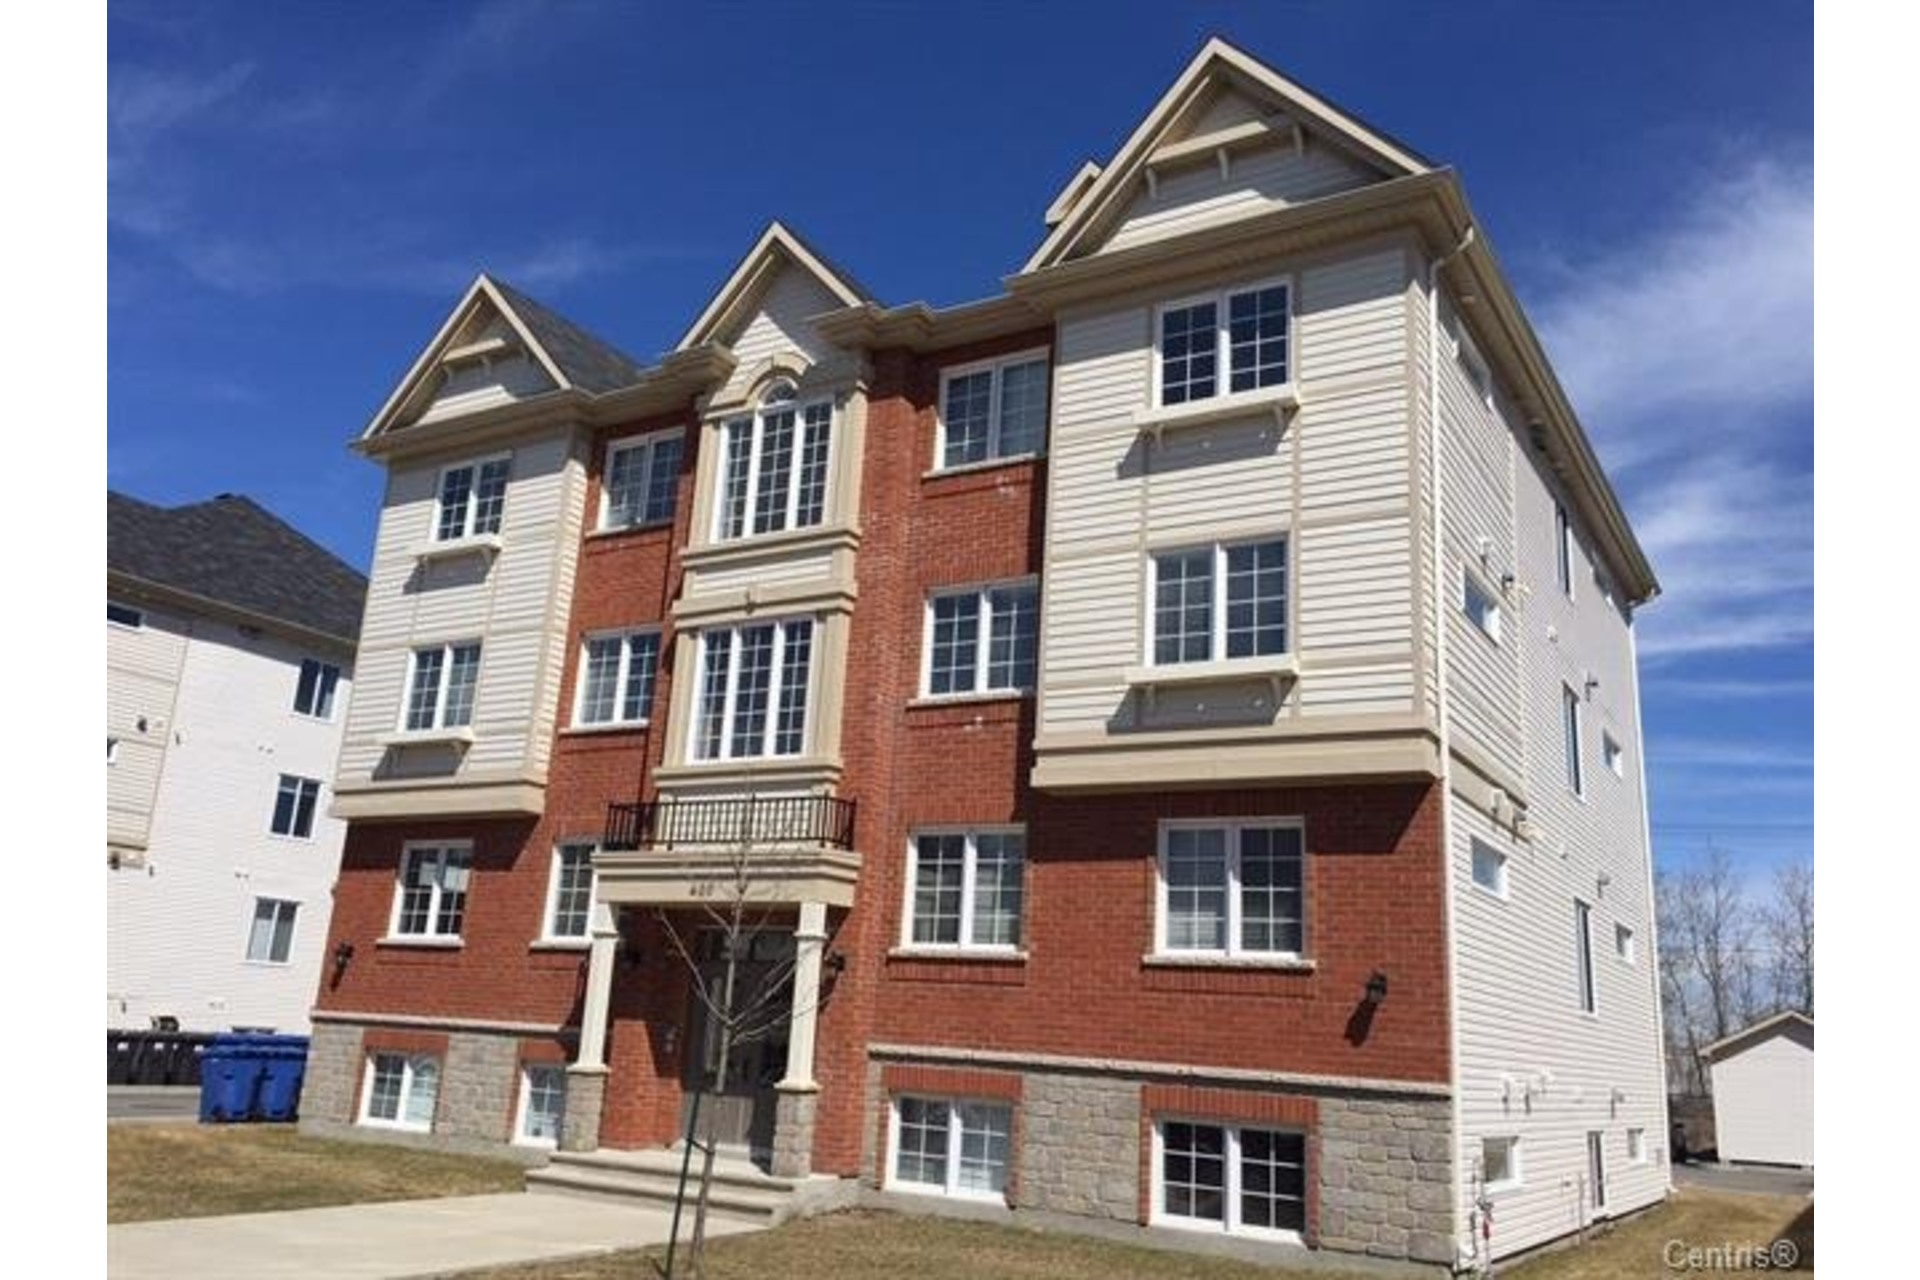 image 1 - Apartment For sale Vaudreuil-Dorion - 6 rooms